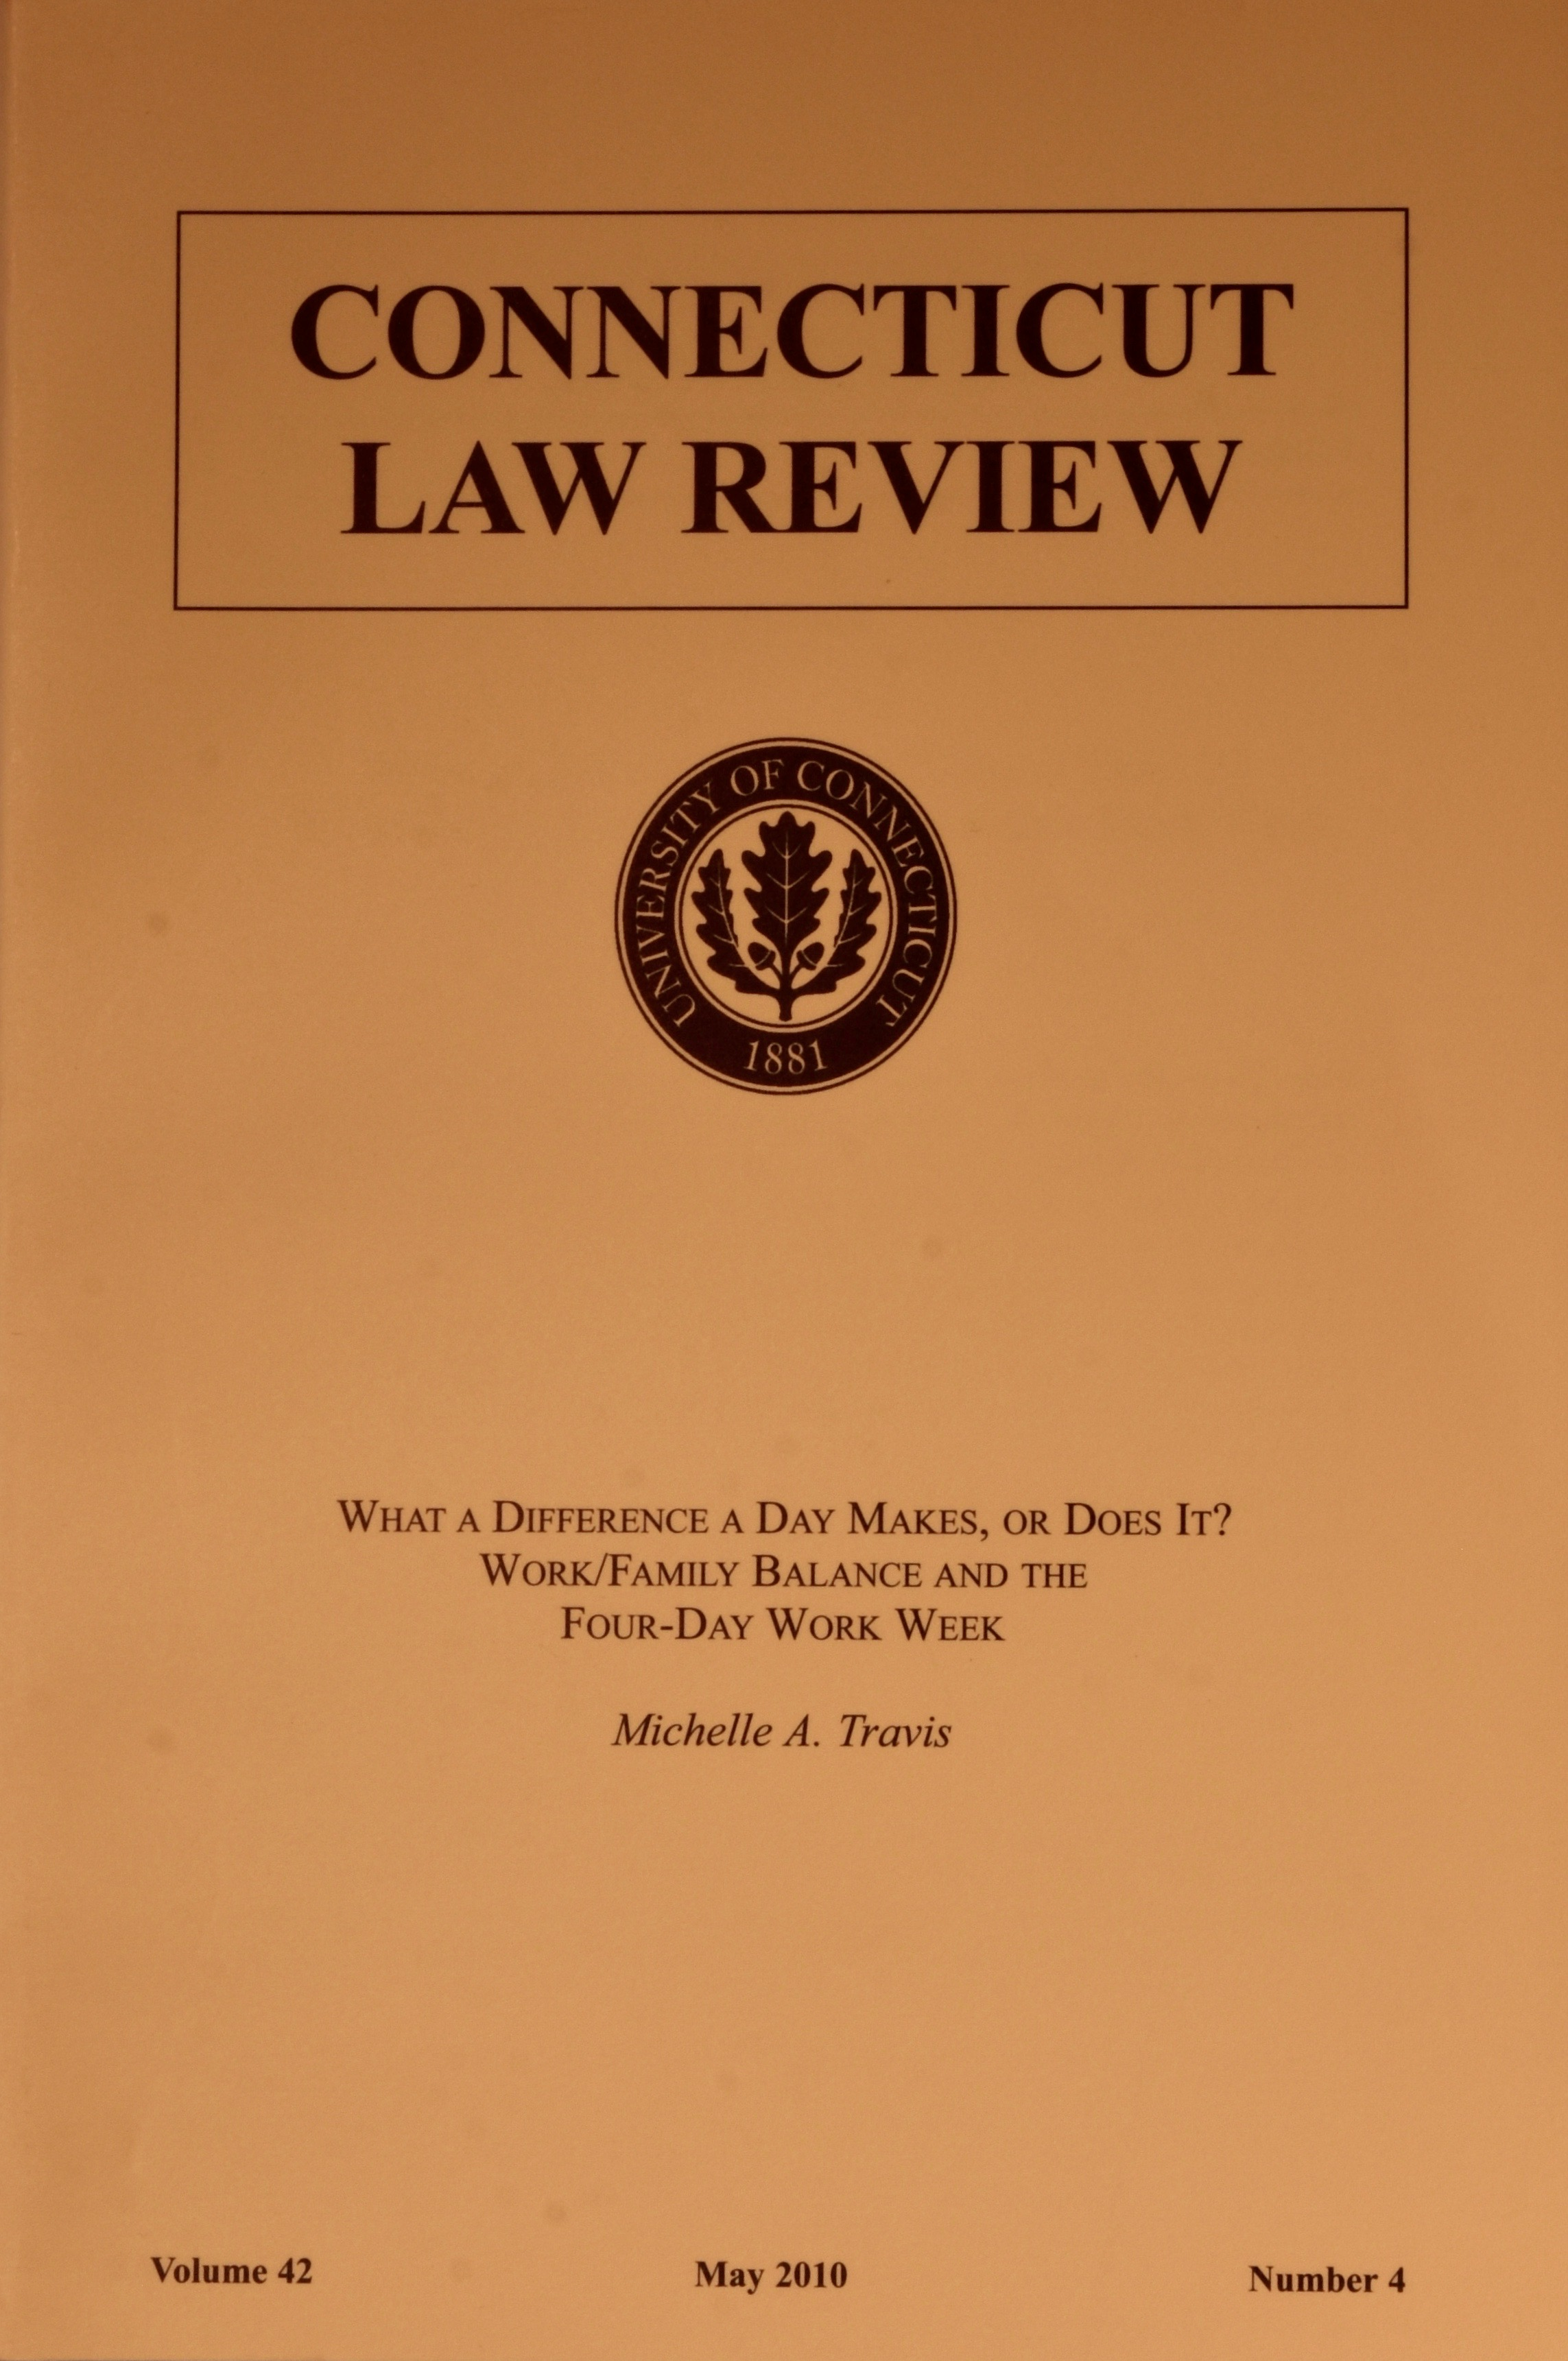 Connecticut Law Review